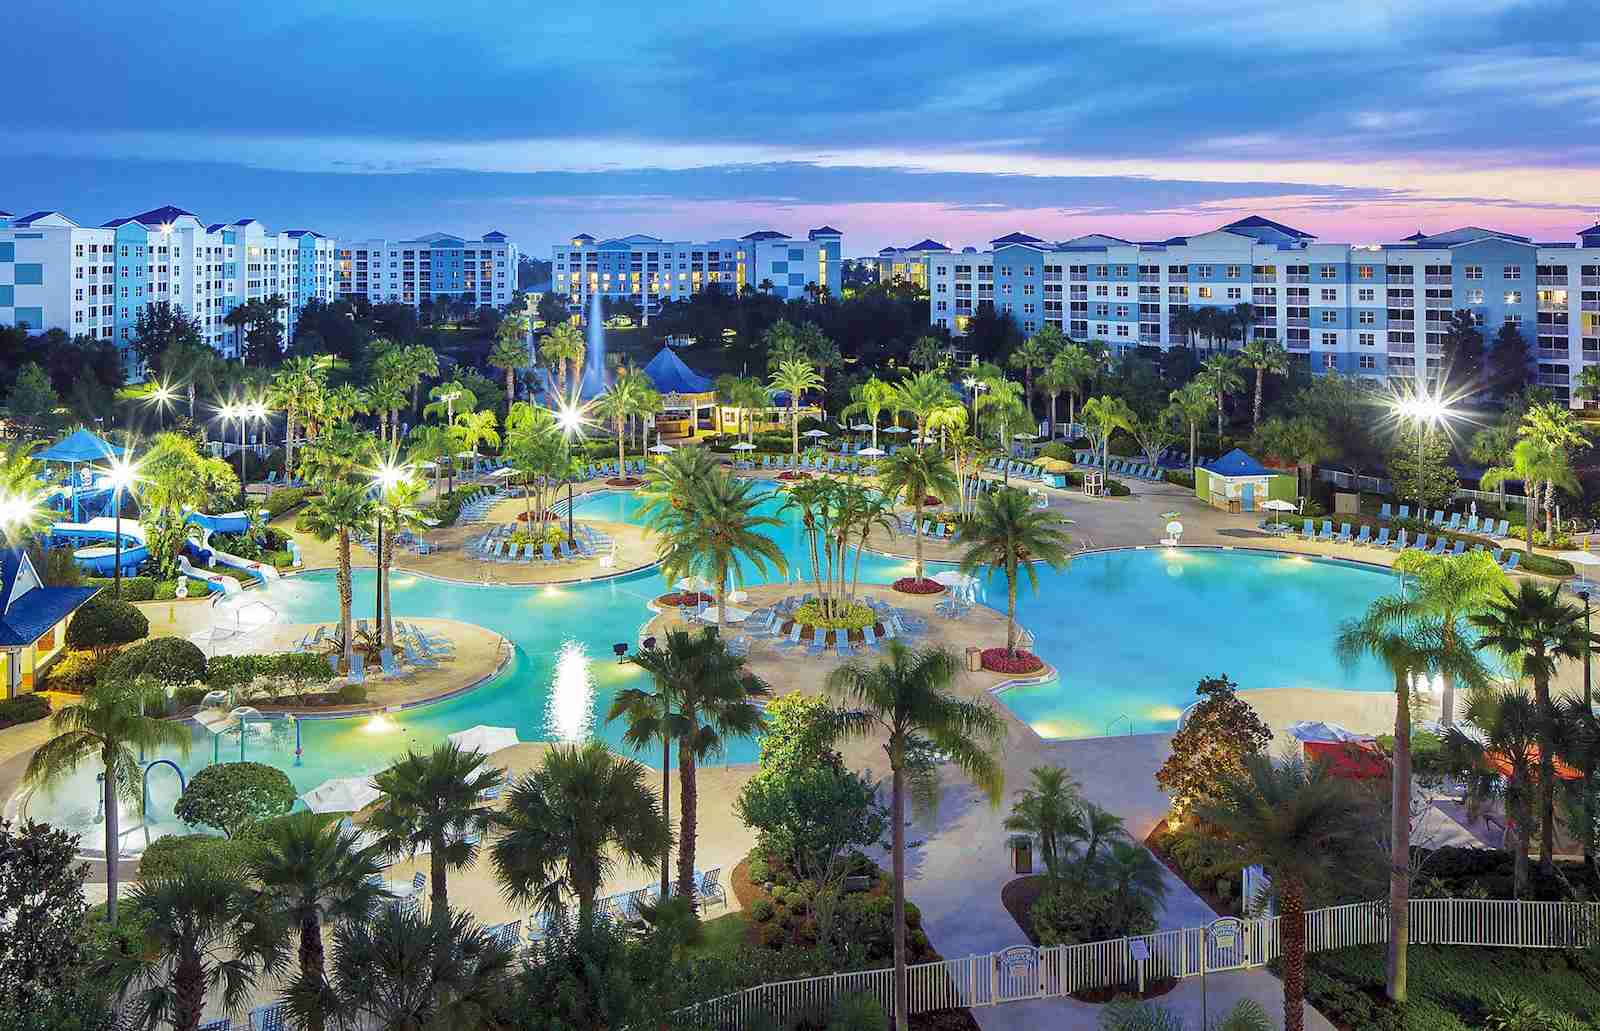 Bluegreen Vacations, The Fountains in Orlando, FL (Photo courtesy of Bluegreen Vacations)